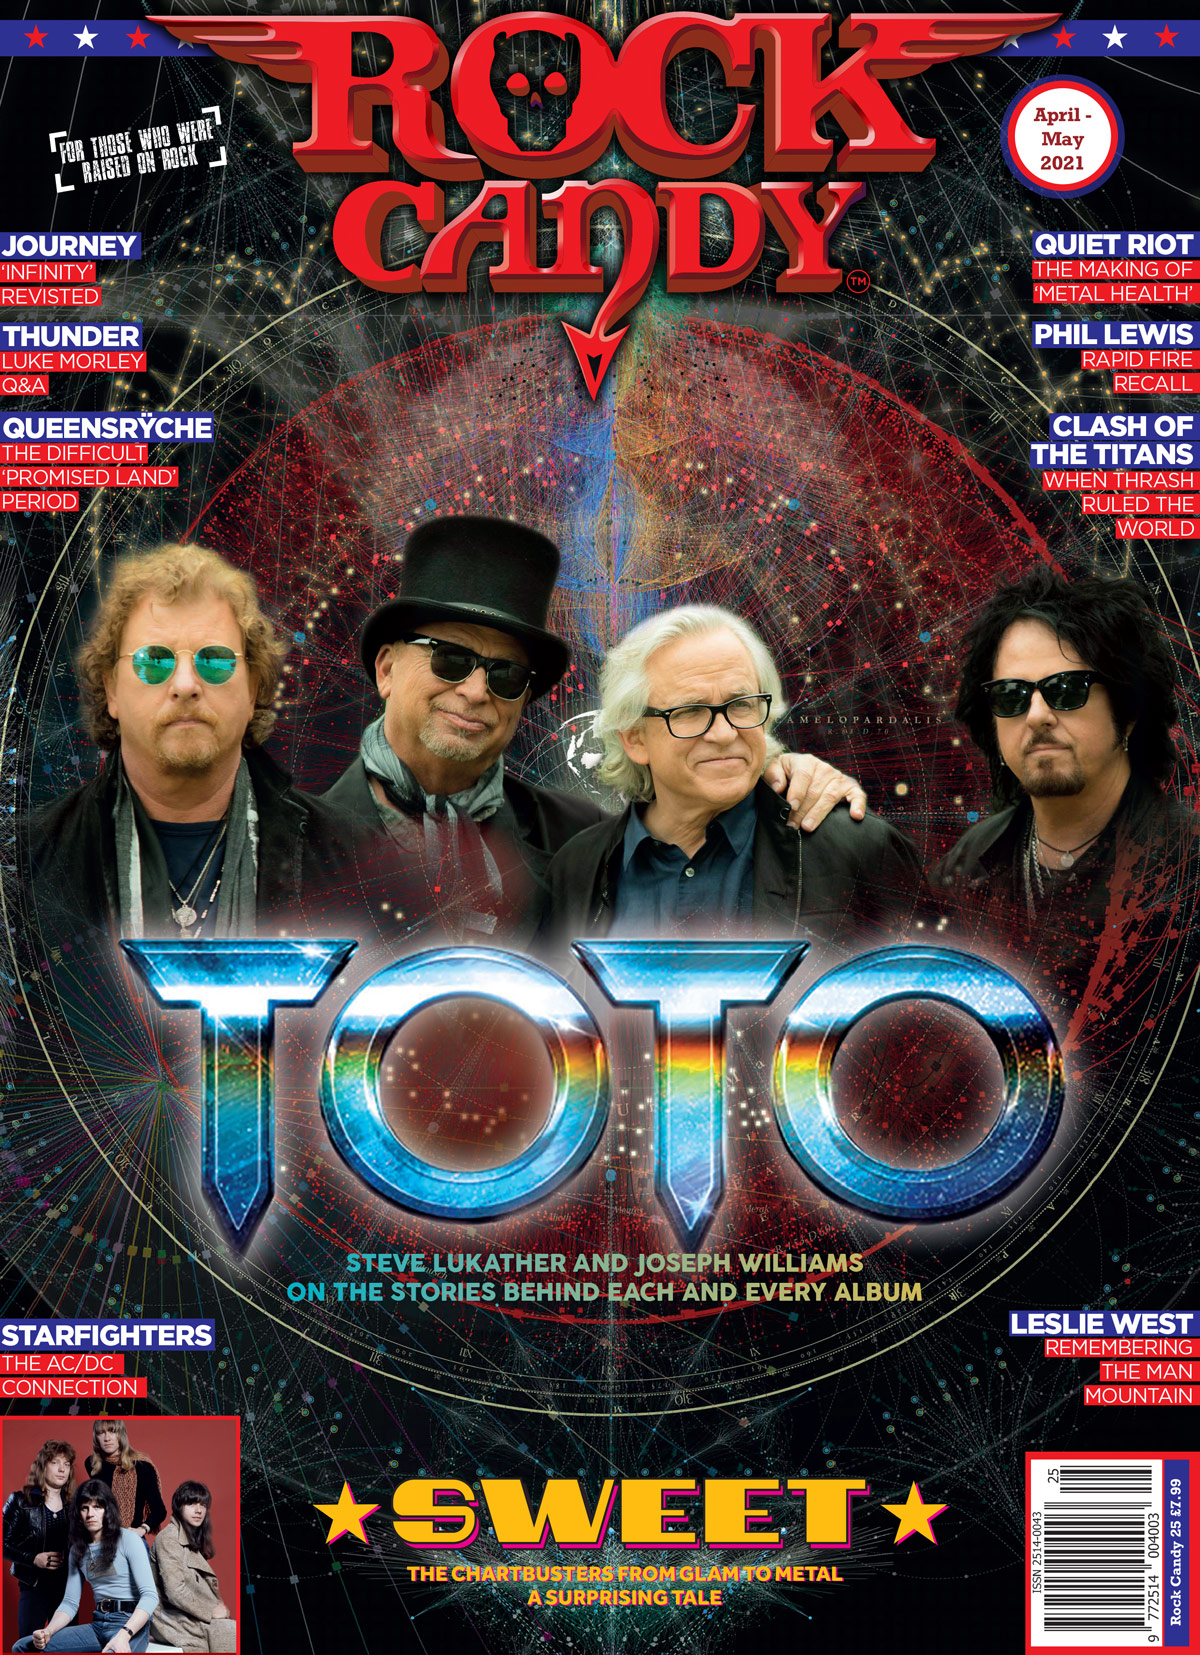 Issue 25 is available right now, featuring our 12-page monster Toto cover story